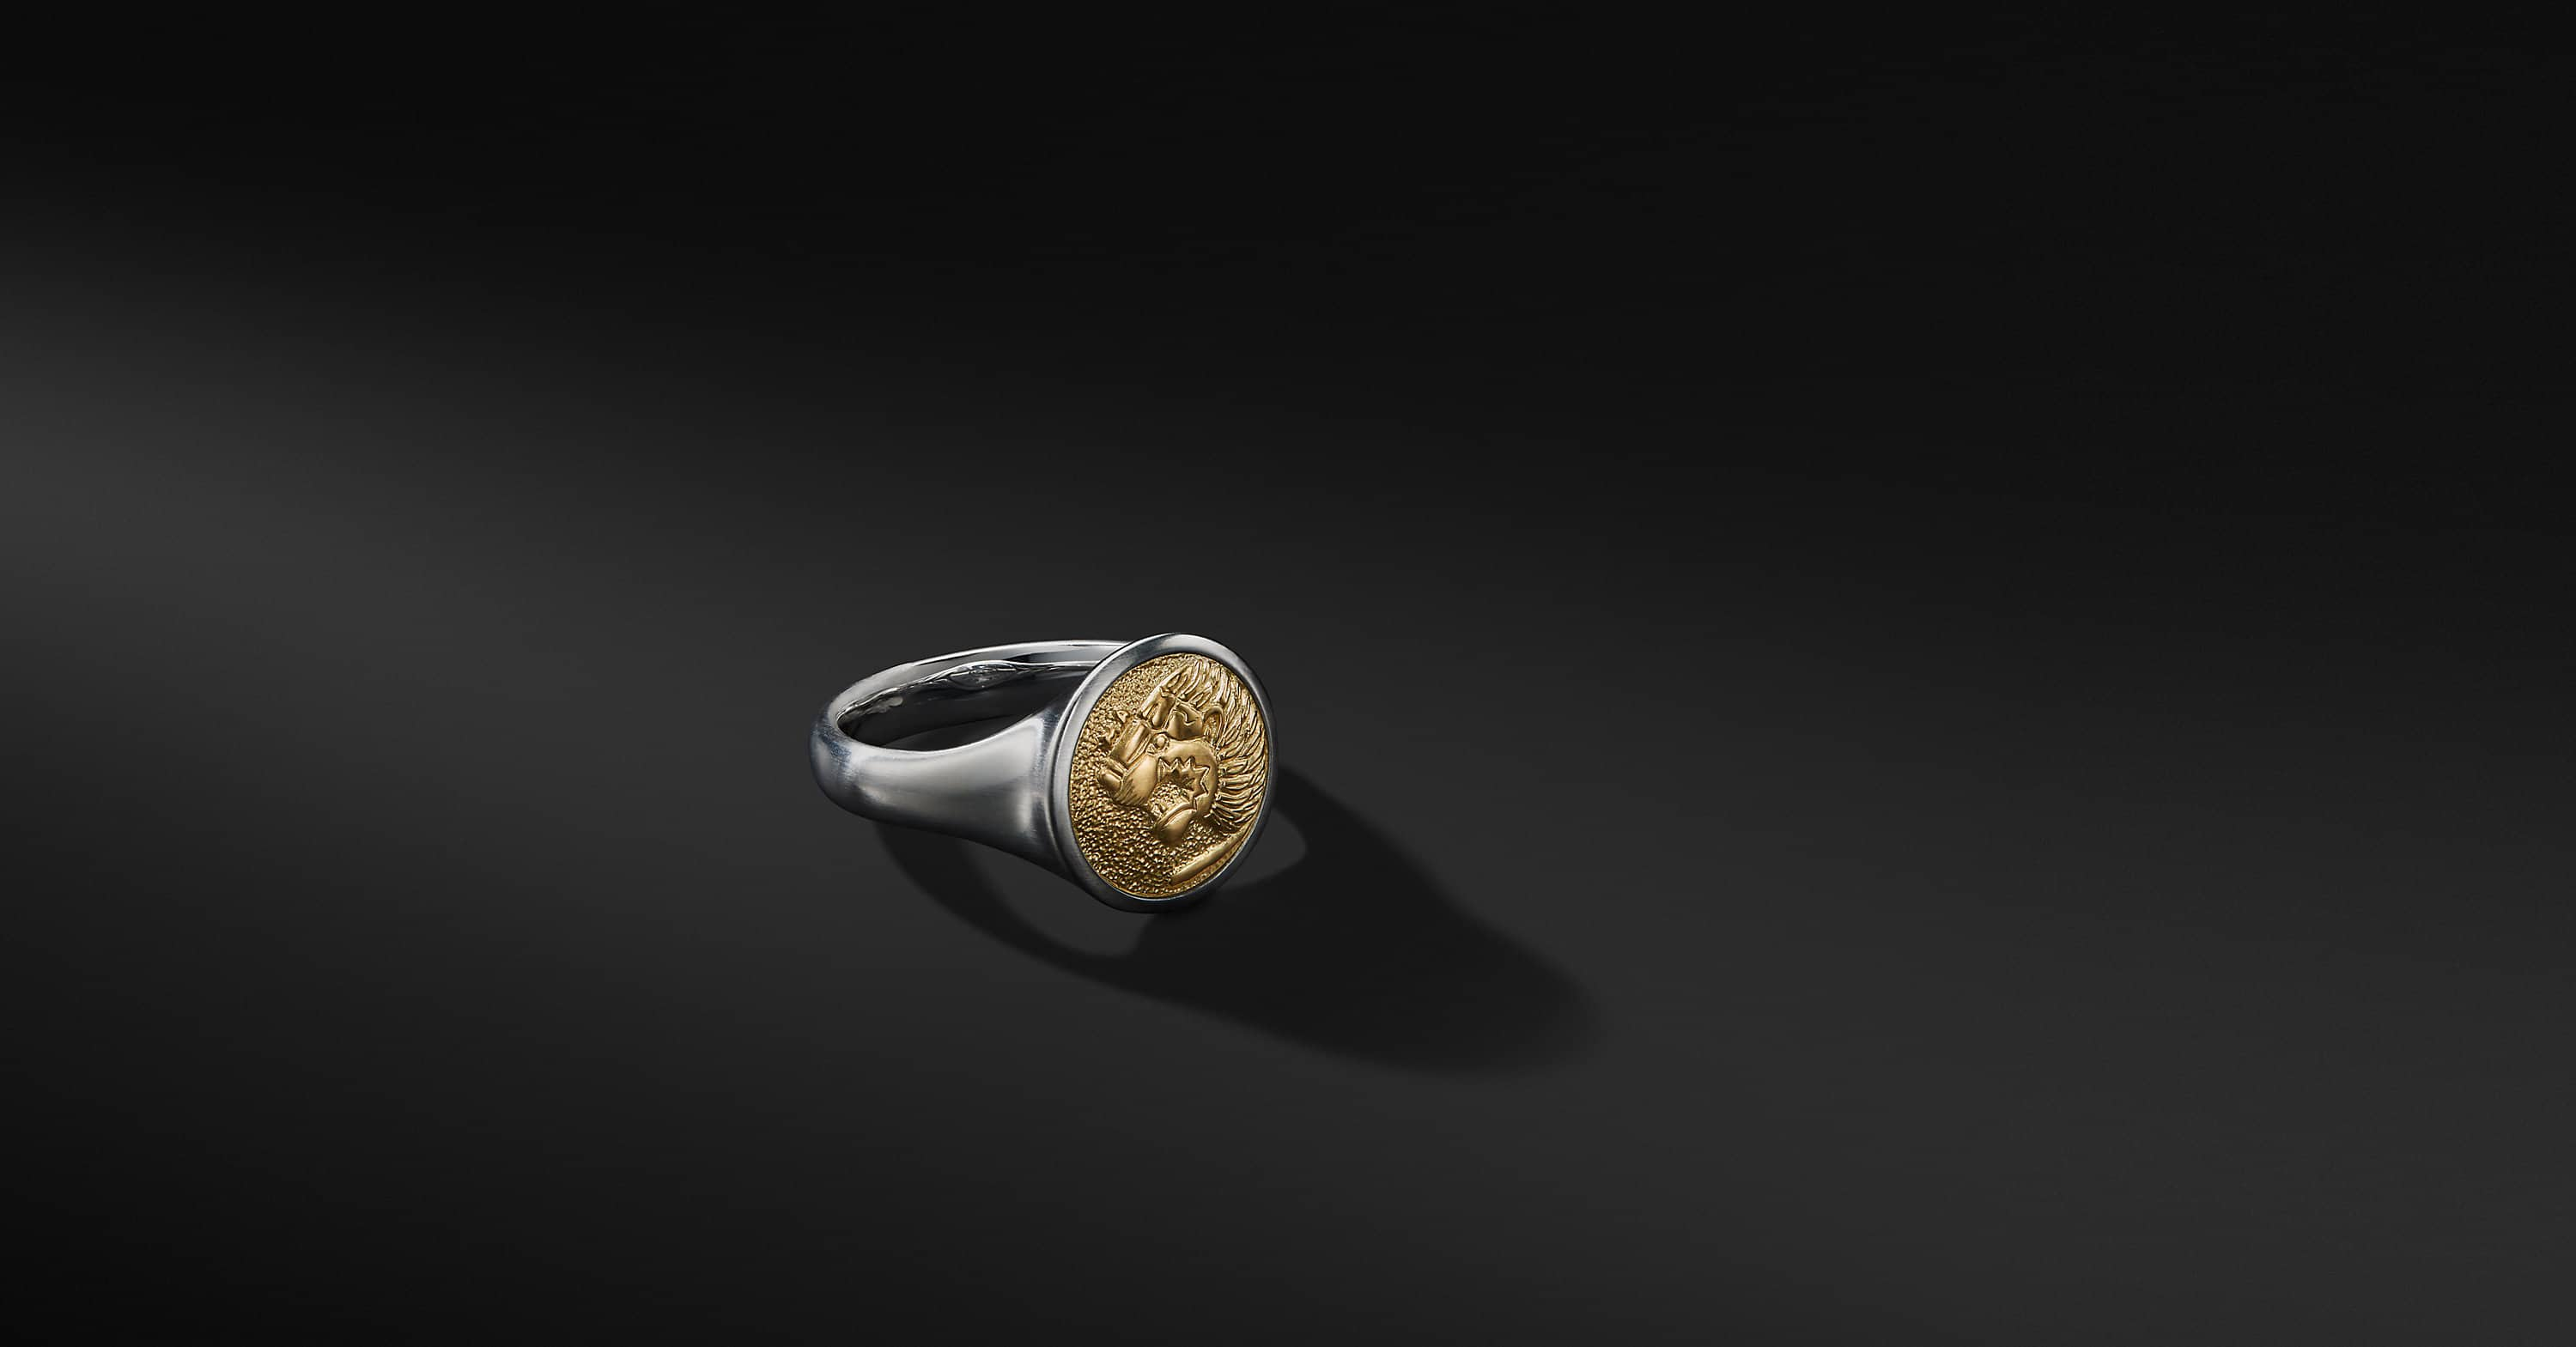 Petrvs Lion Signet Pinky Ring with 18K Gold